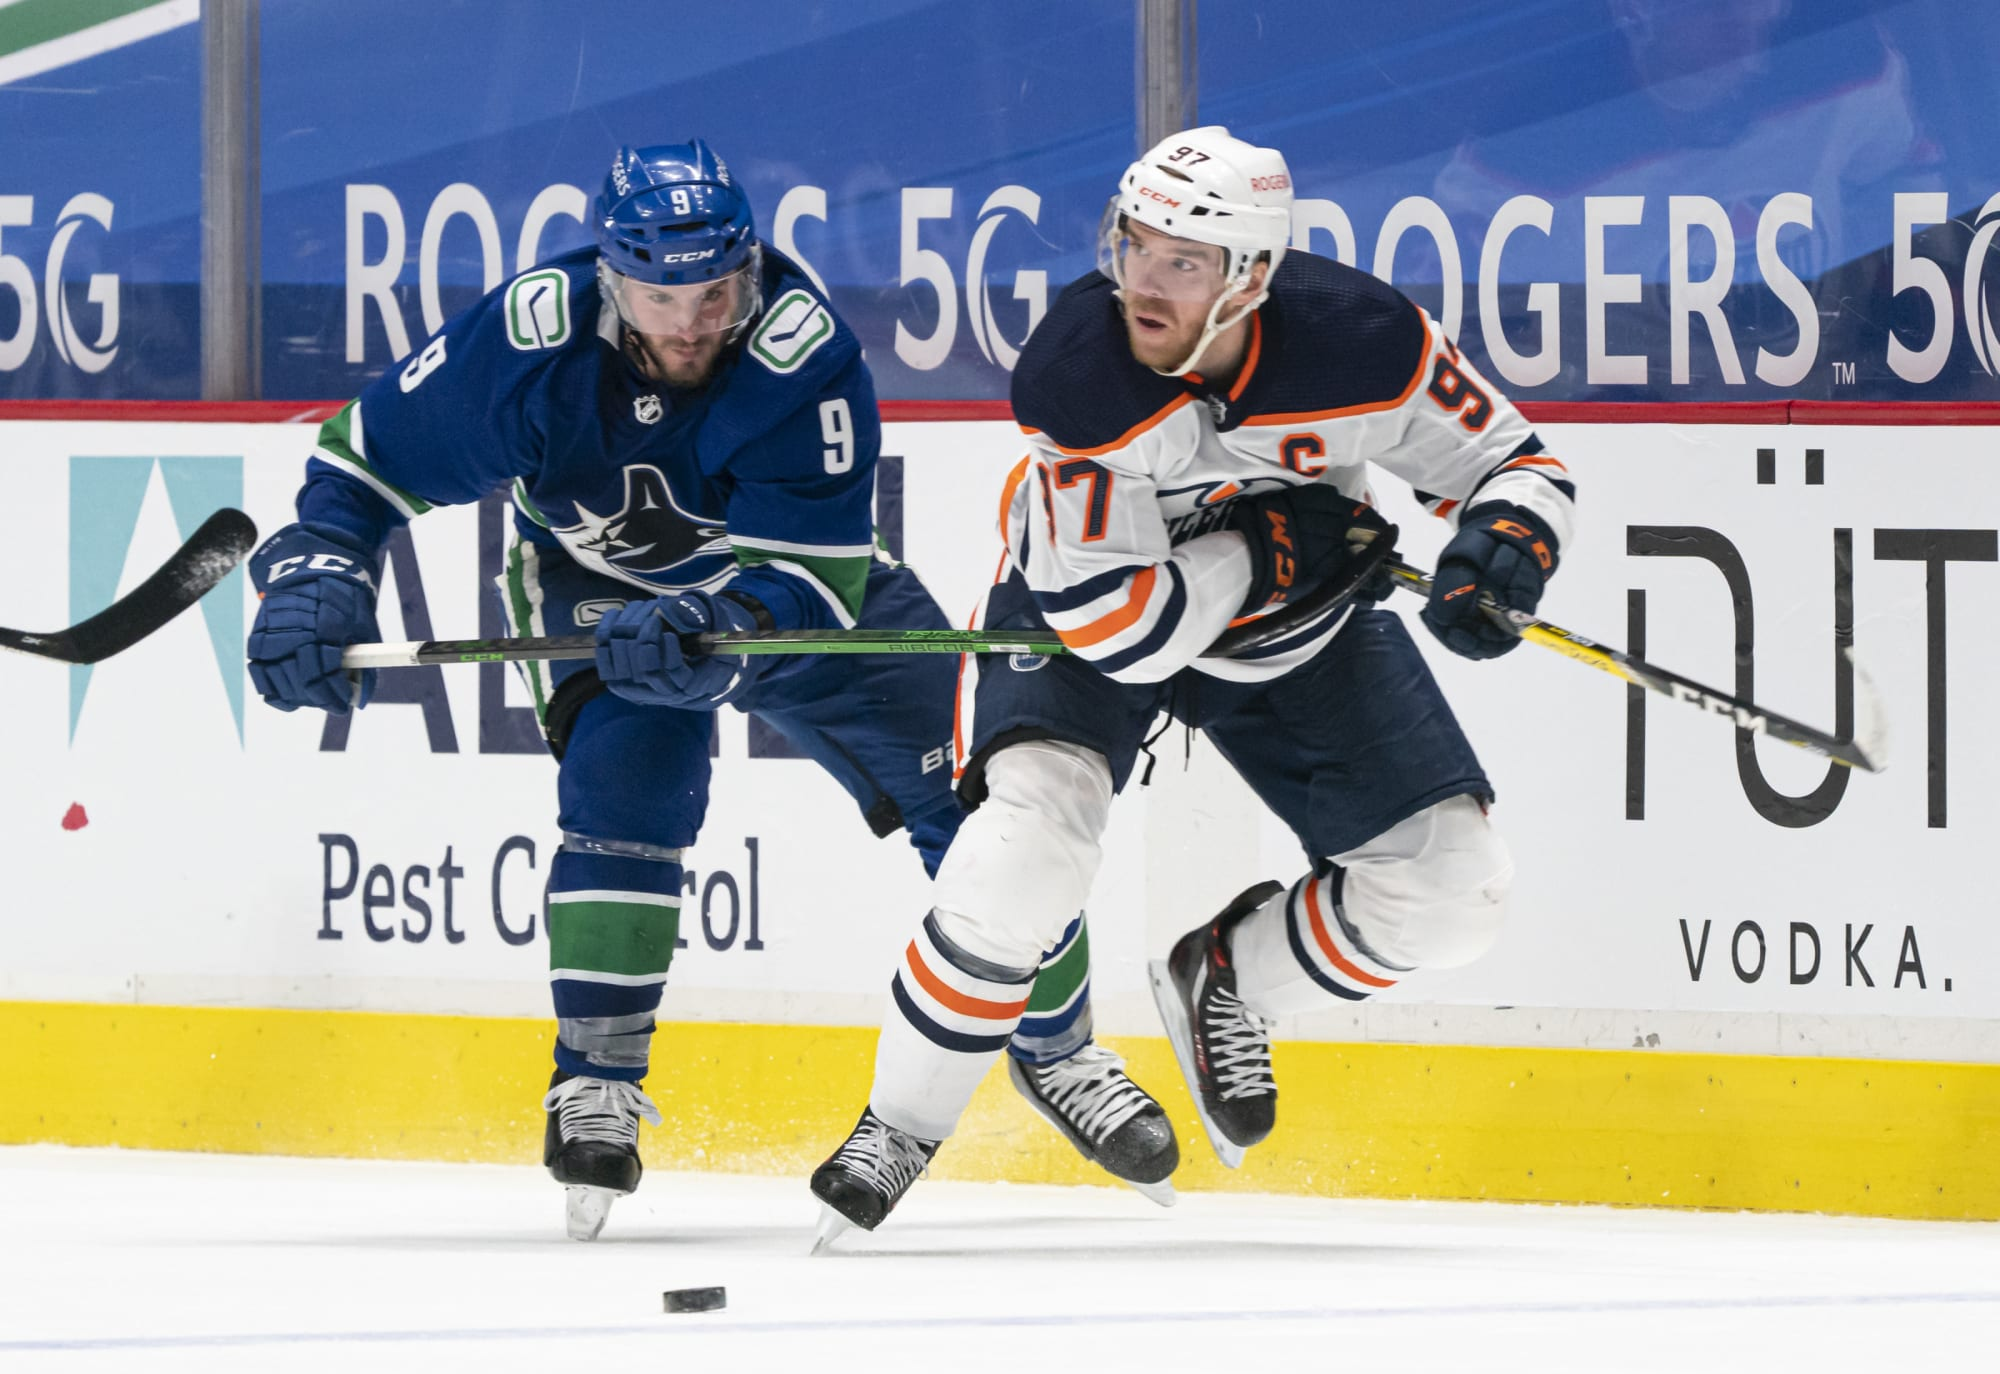 Edmonton Oilers: Will Connor McDavid make it to 100 points?